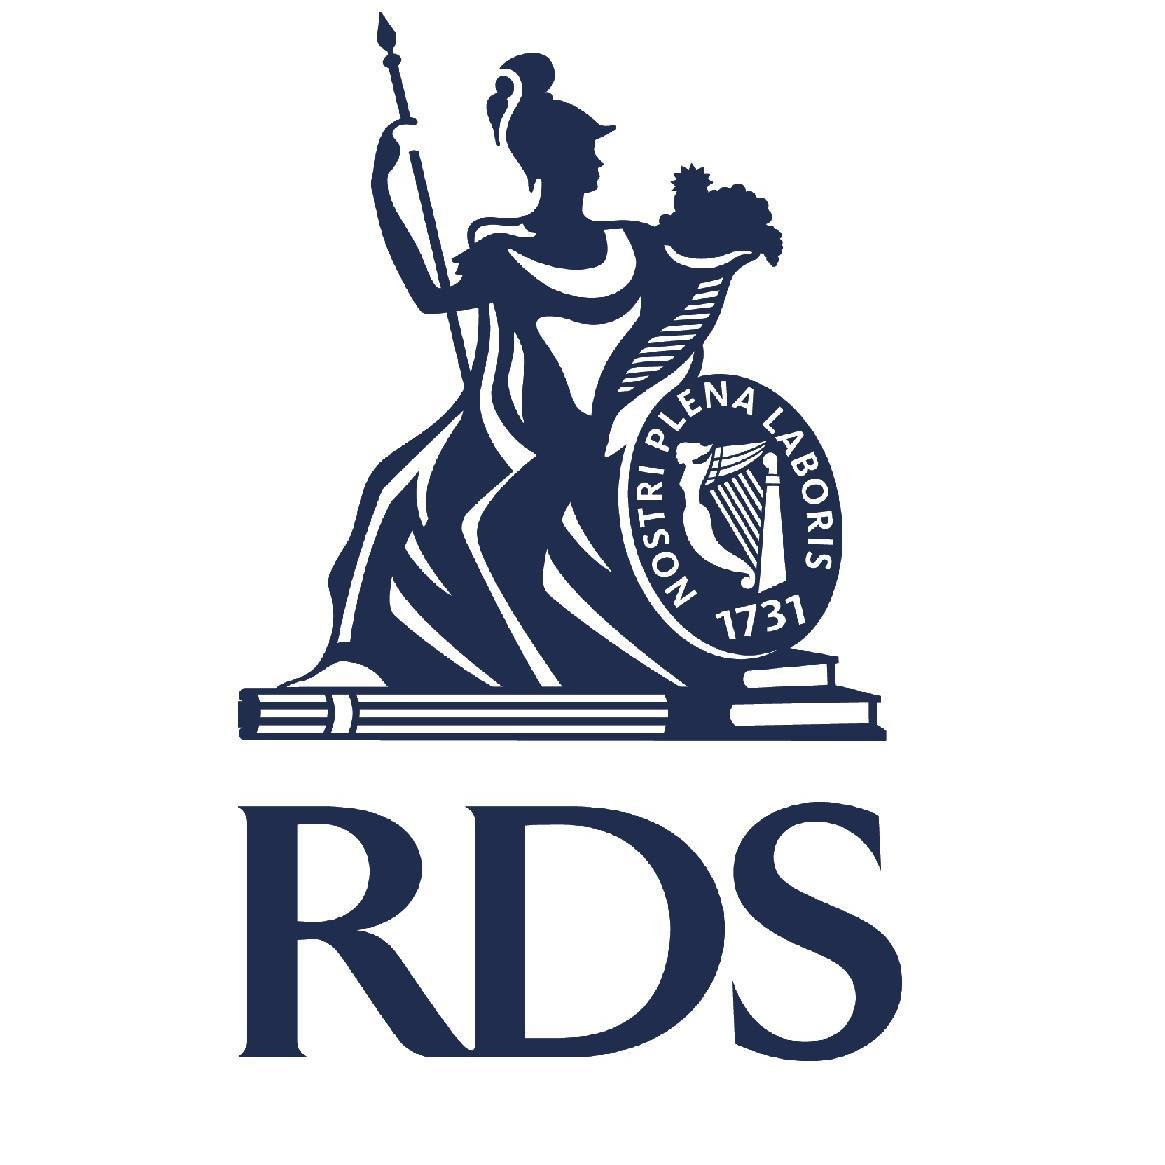 The RDS